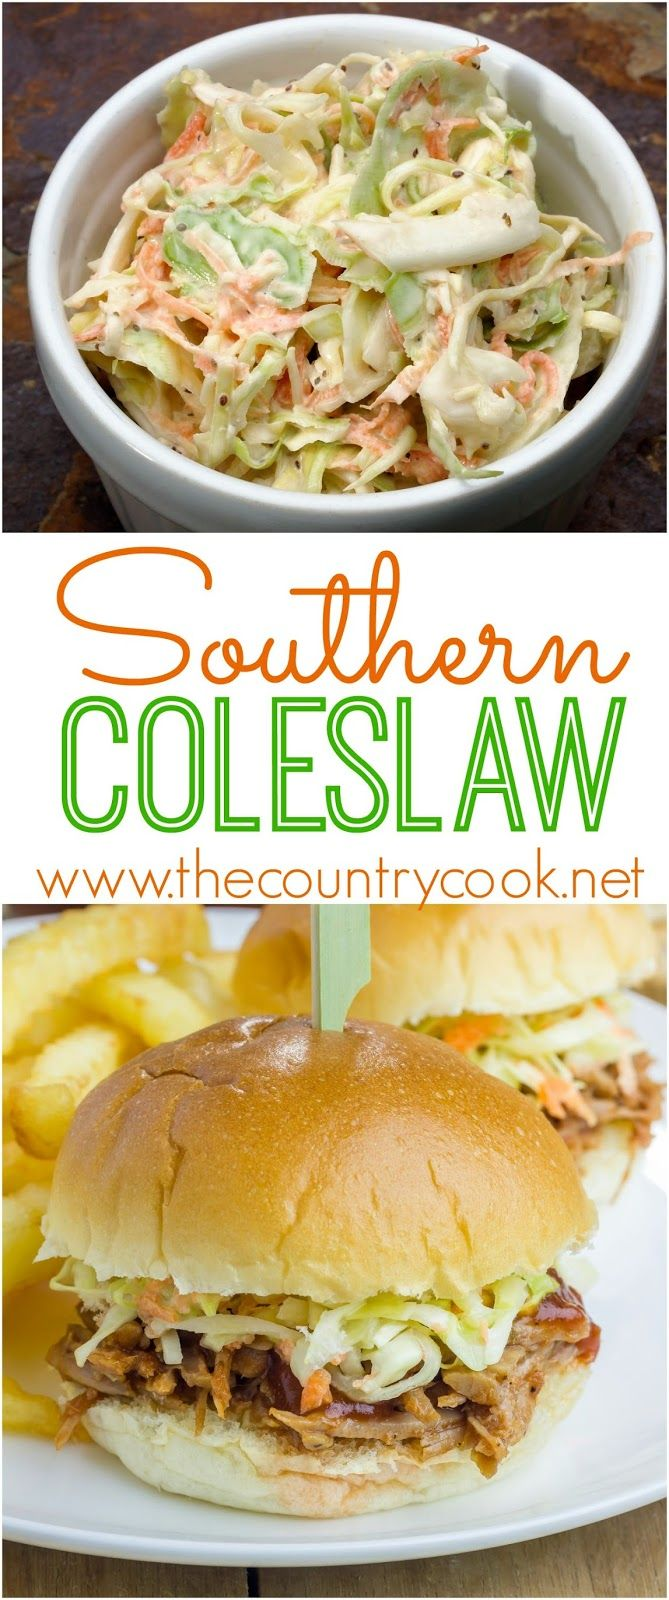 Southern Coleslaw recipe from The Country Cook. So good by itself or on pulled pork sandwiches!